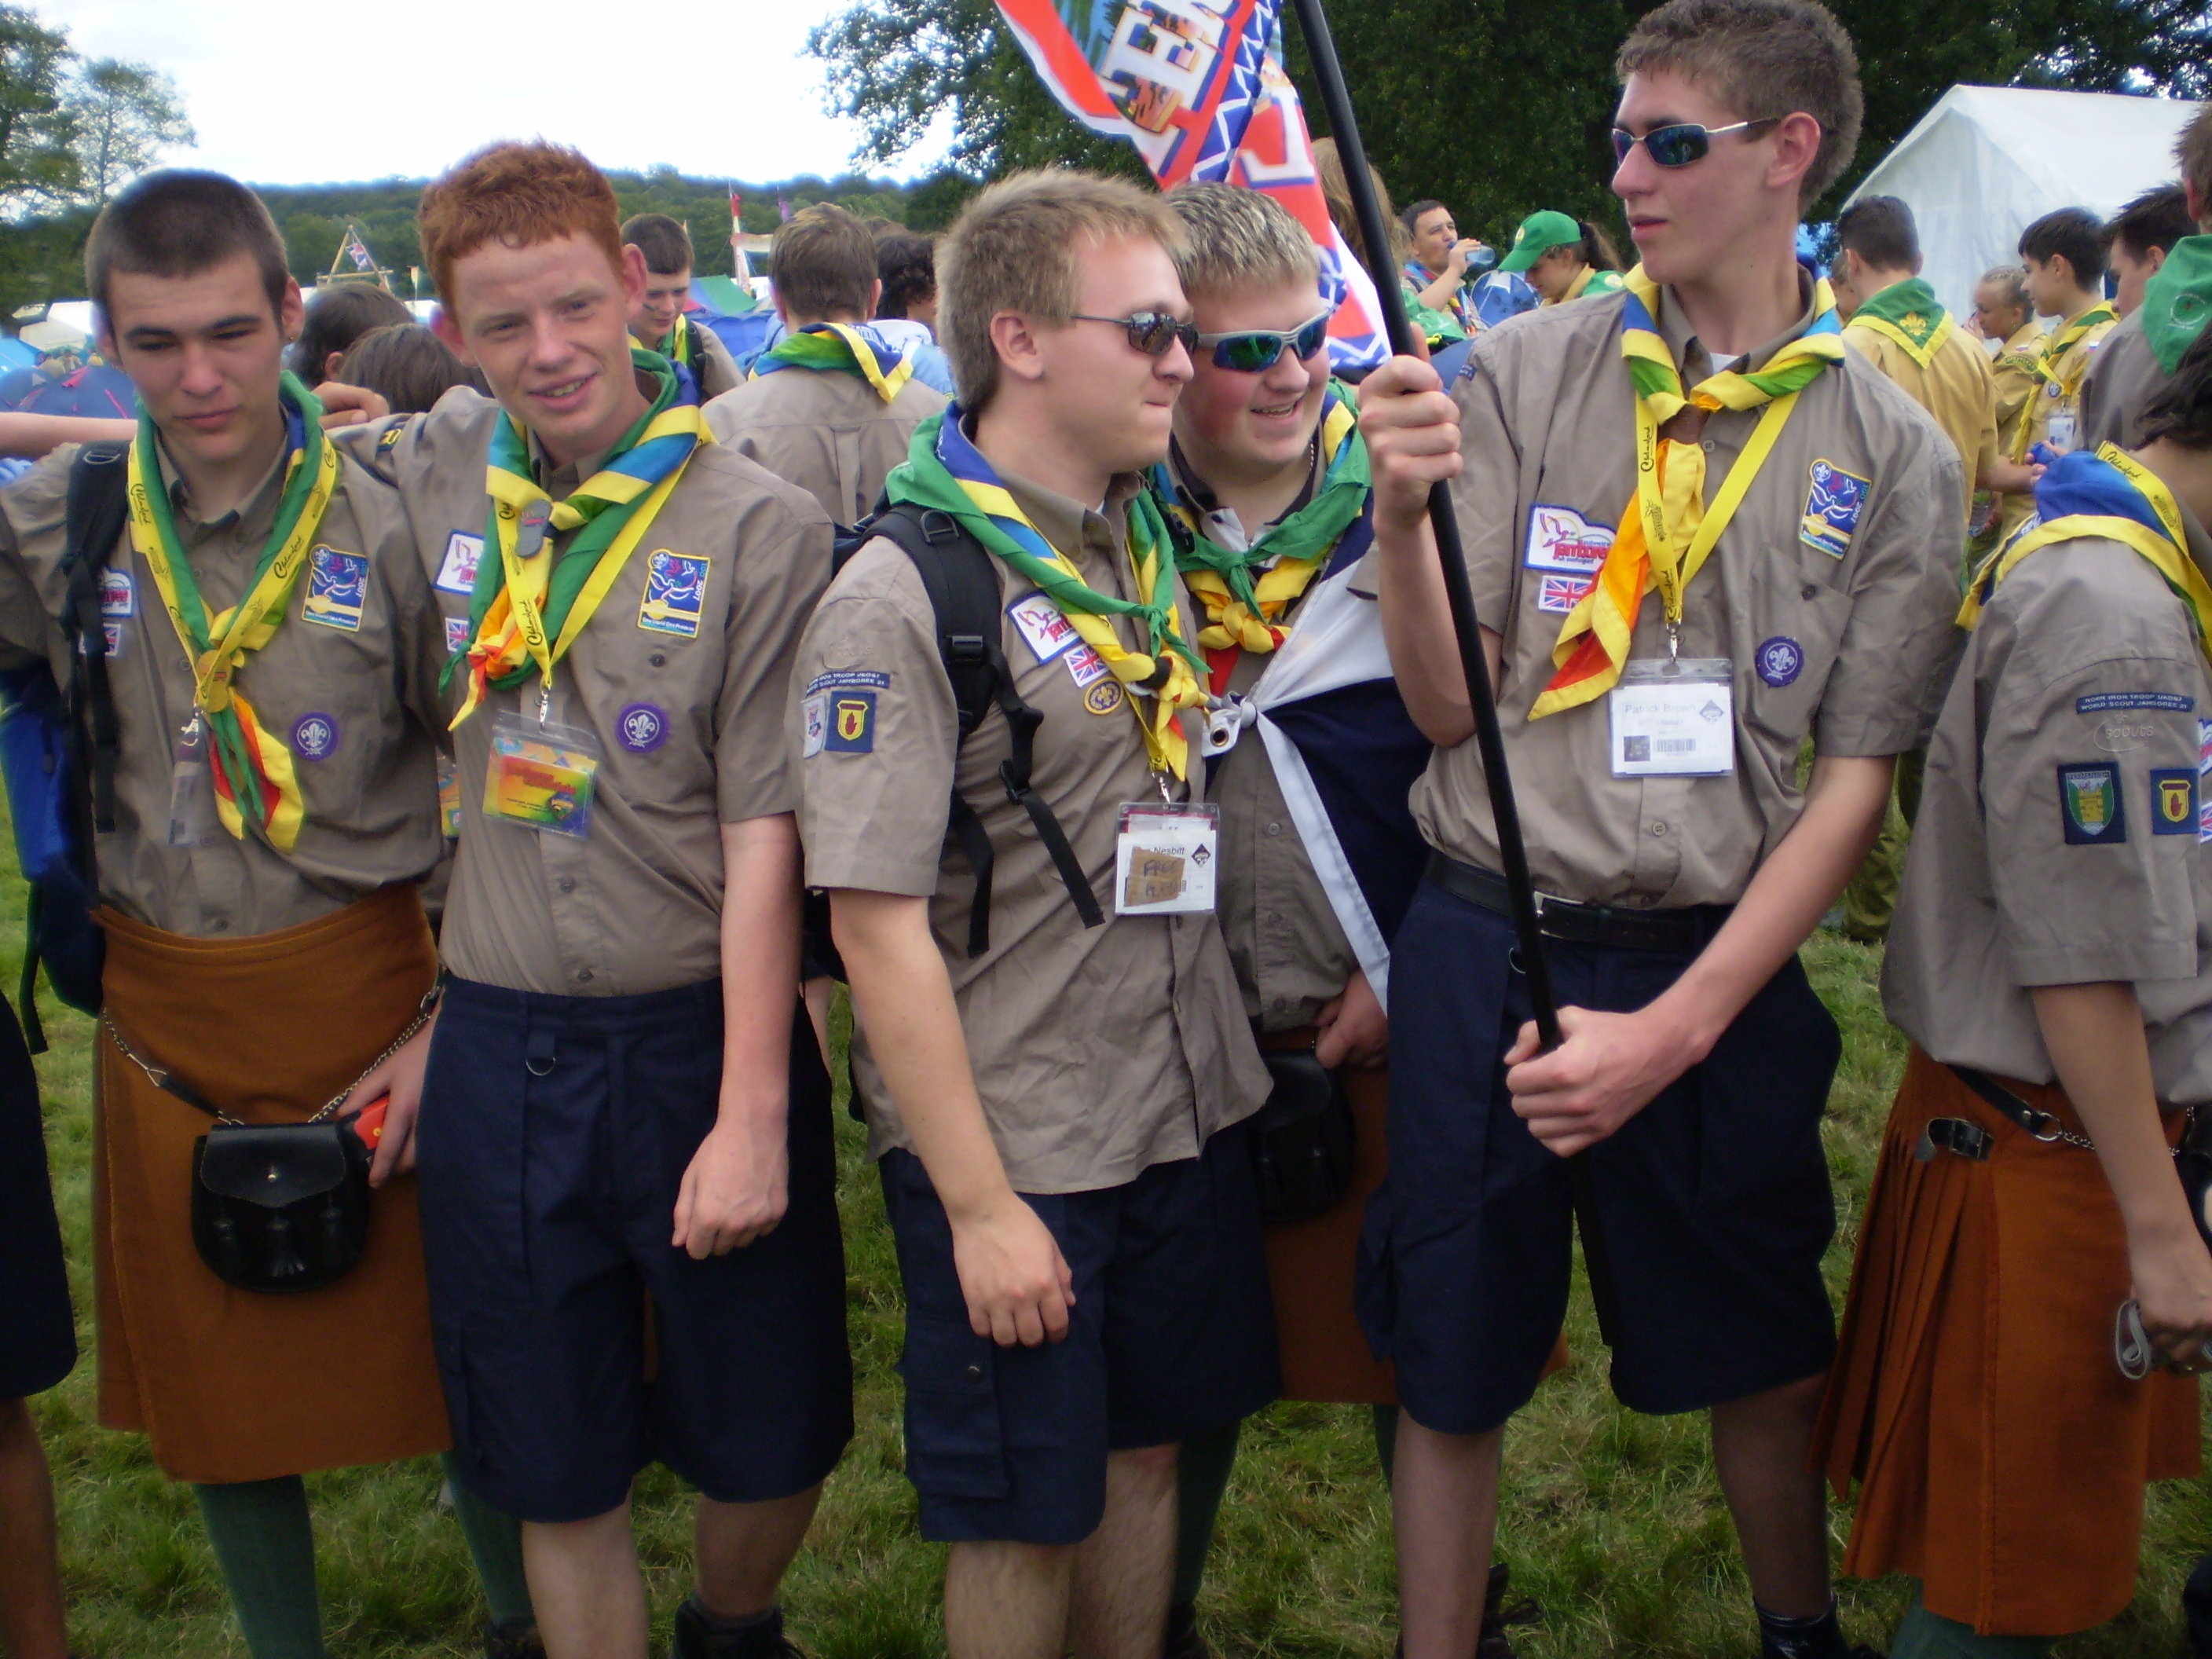 explorer scouts (the scout association) - wikipedia